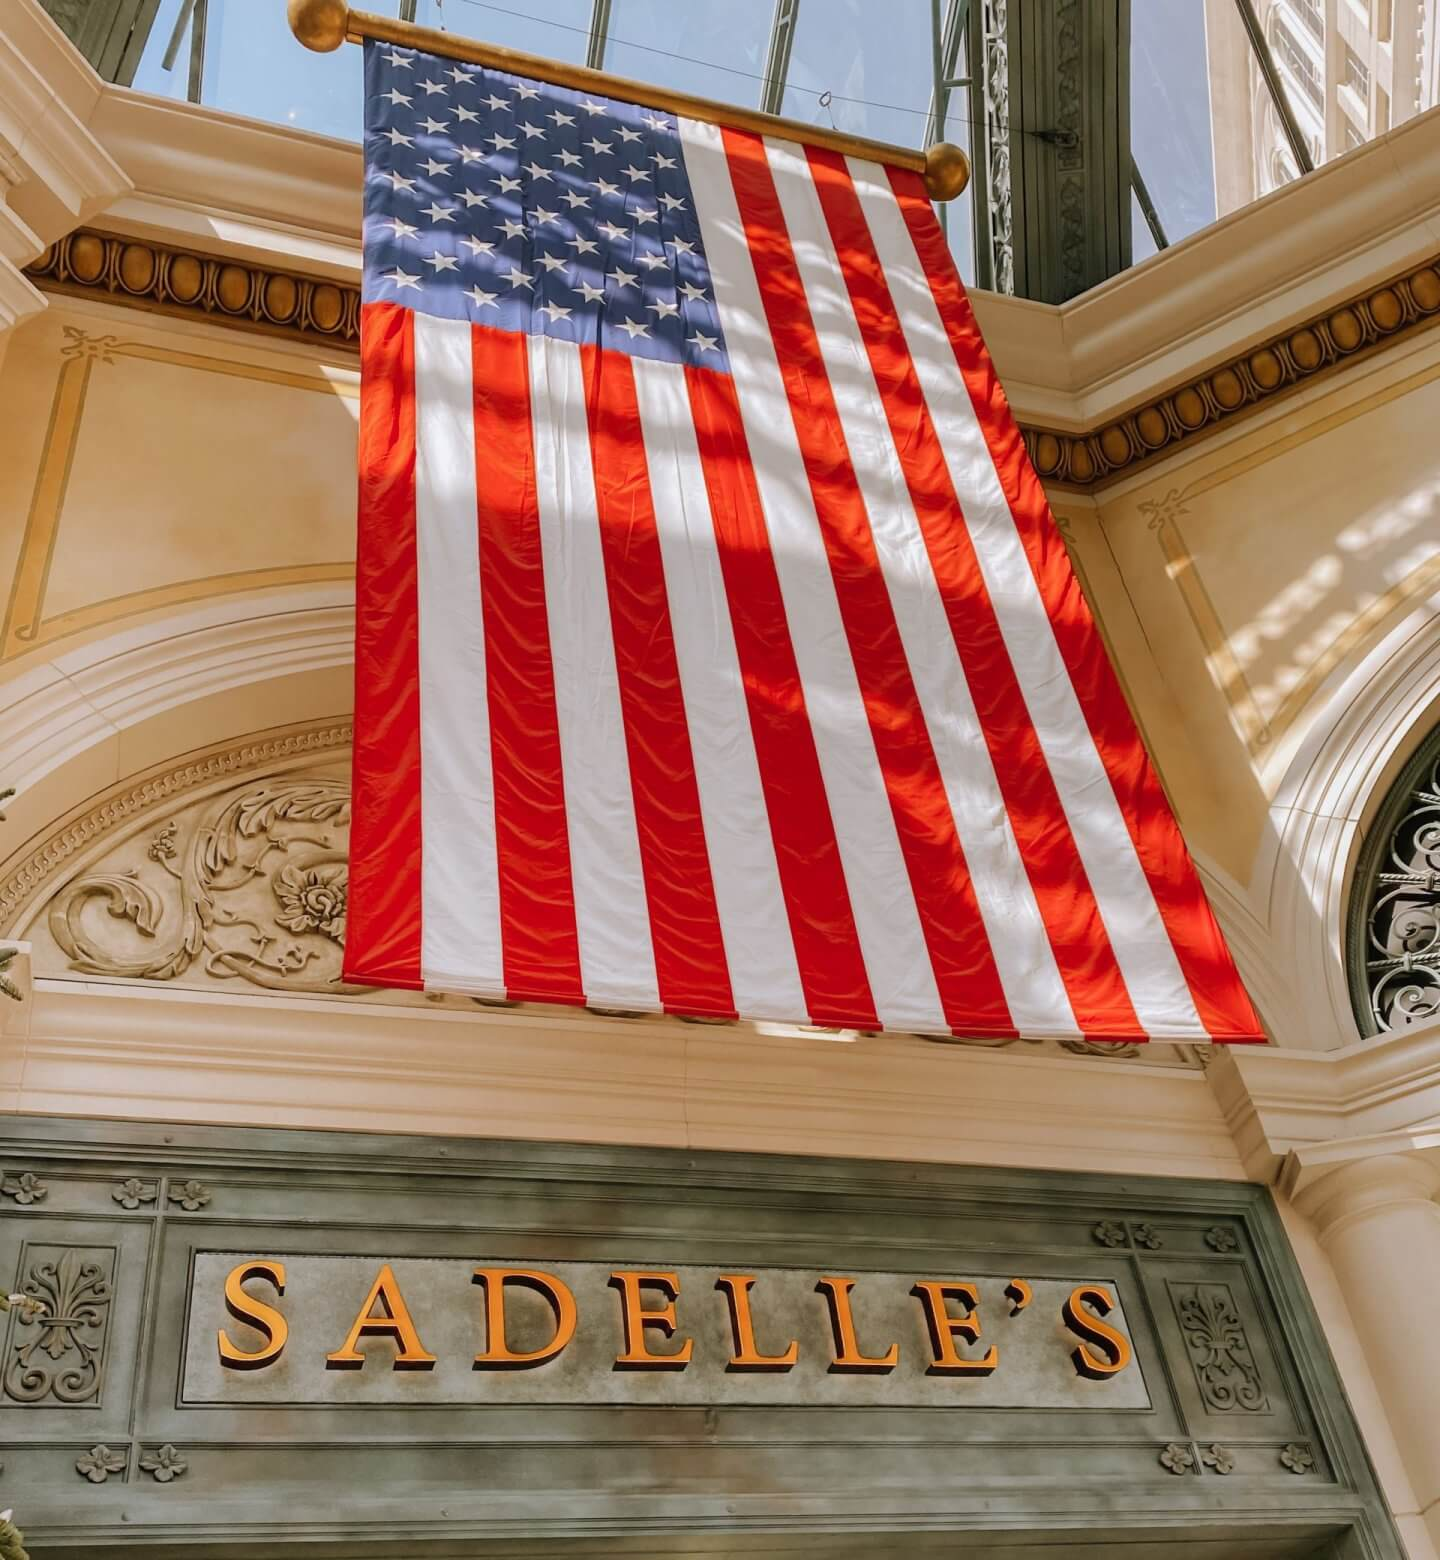 image of sadelle's sign with USA flag in las vegas